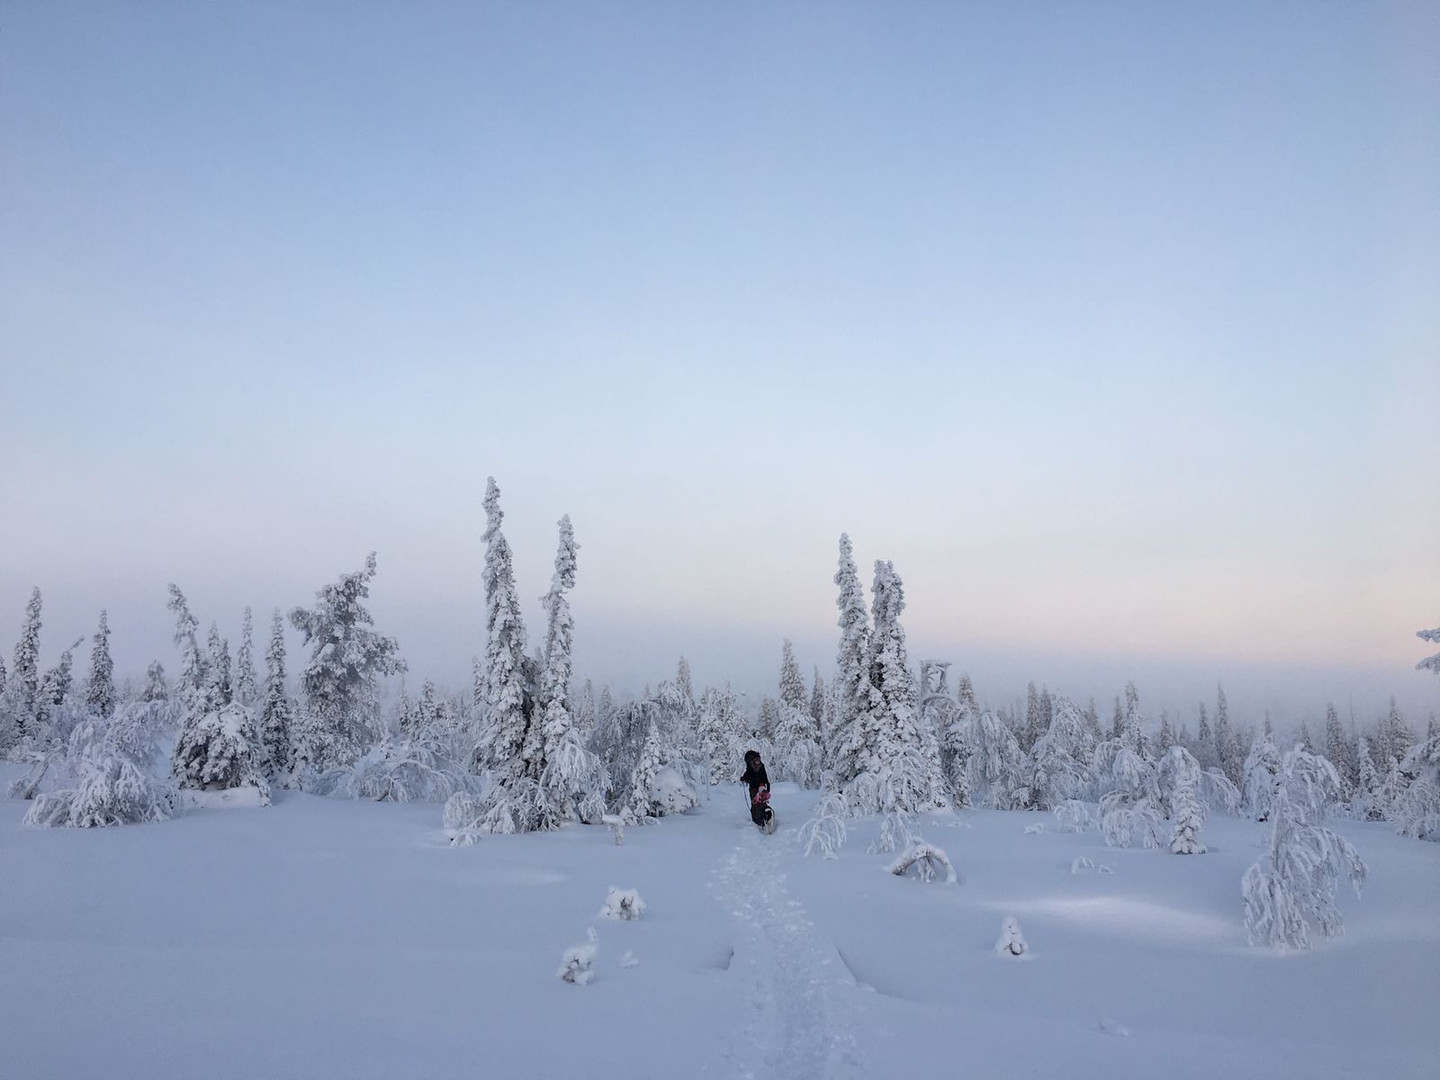 Winter view in South Lapland